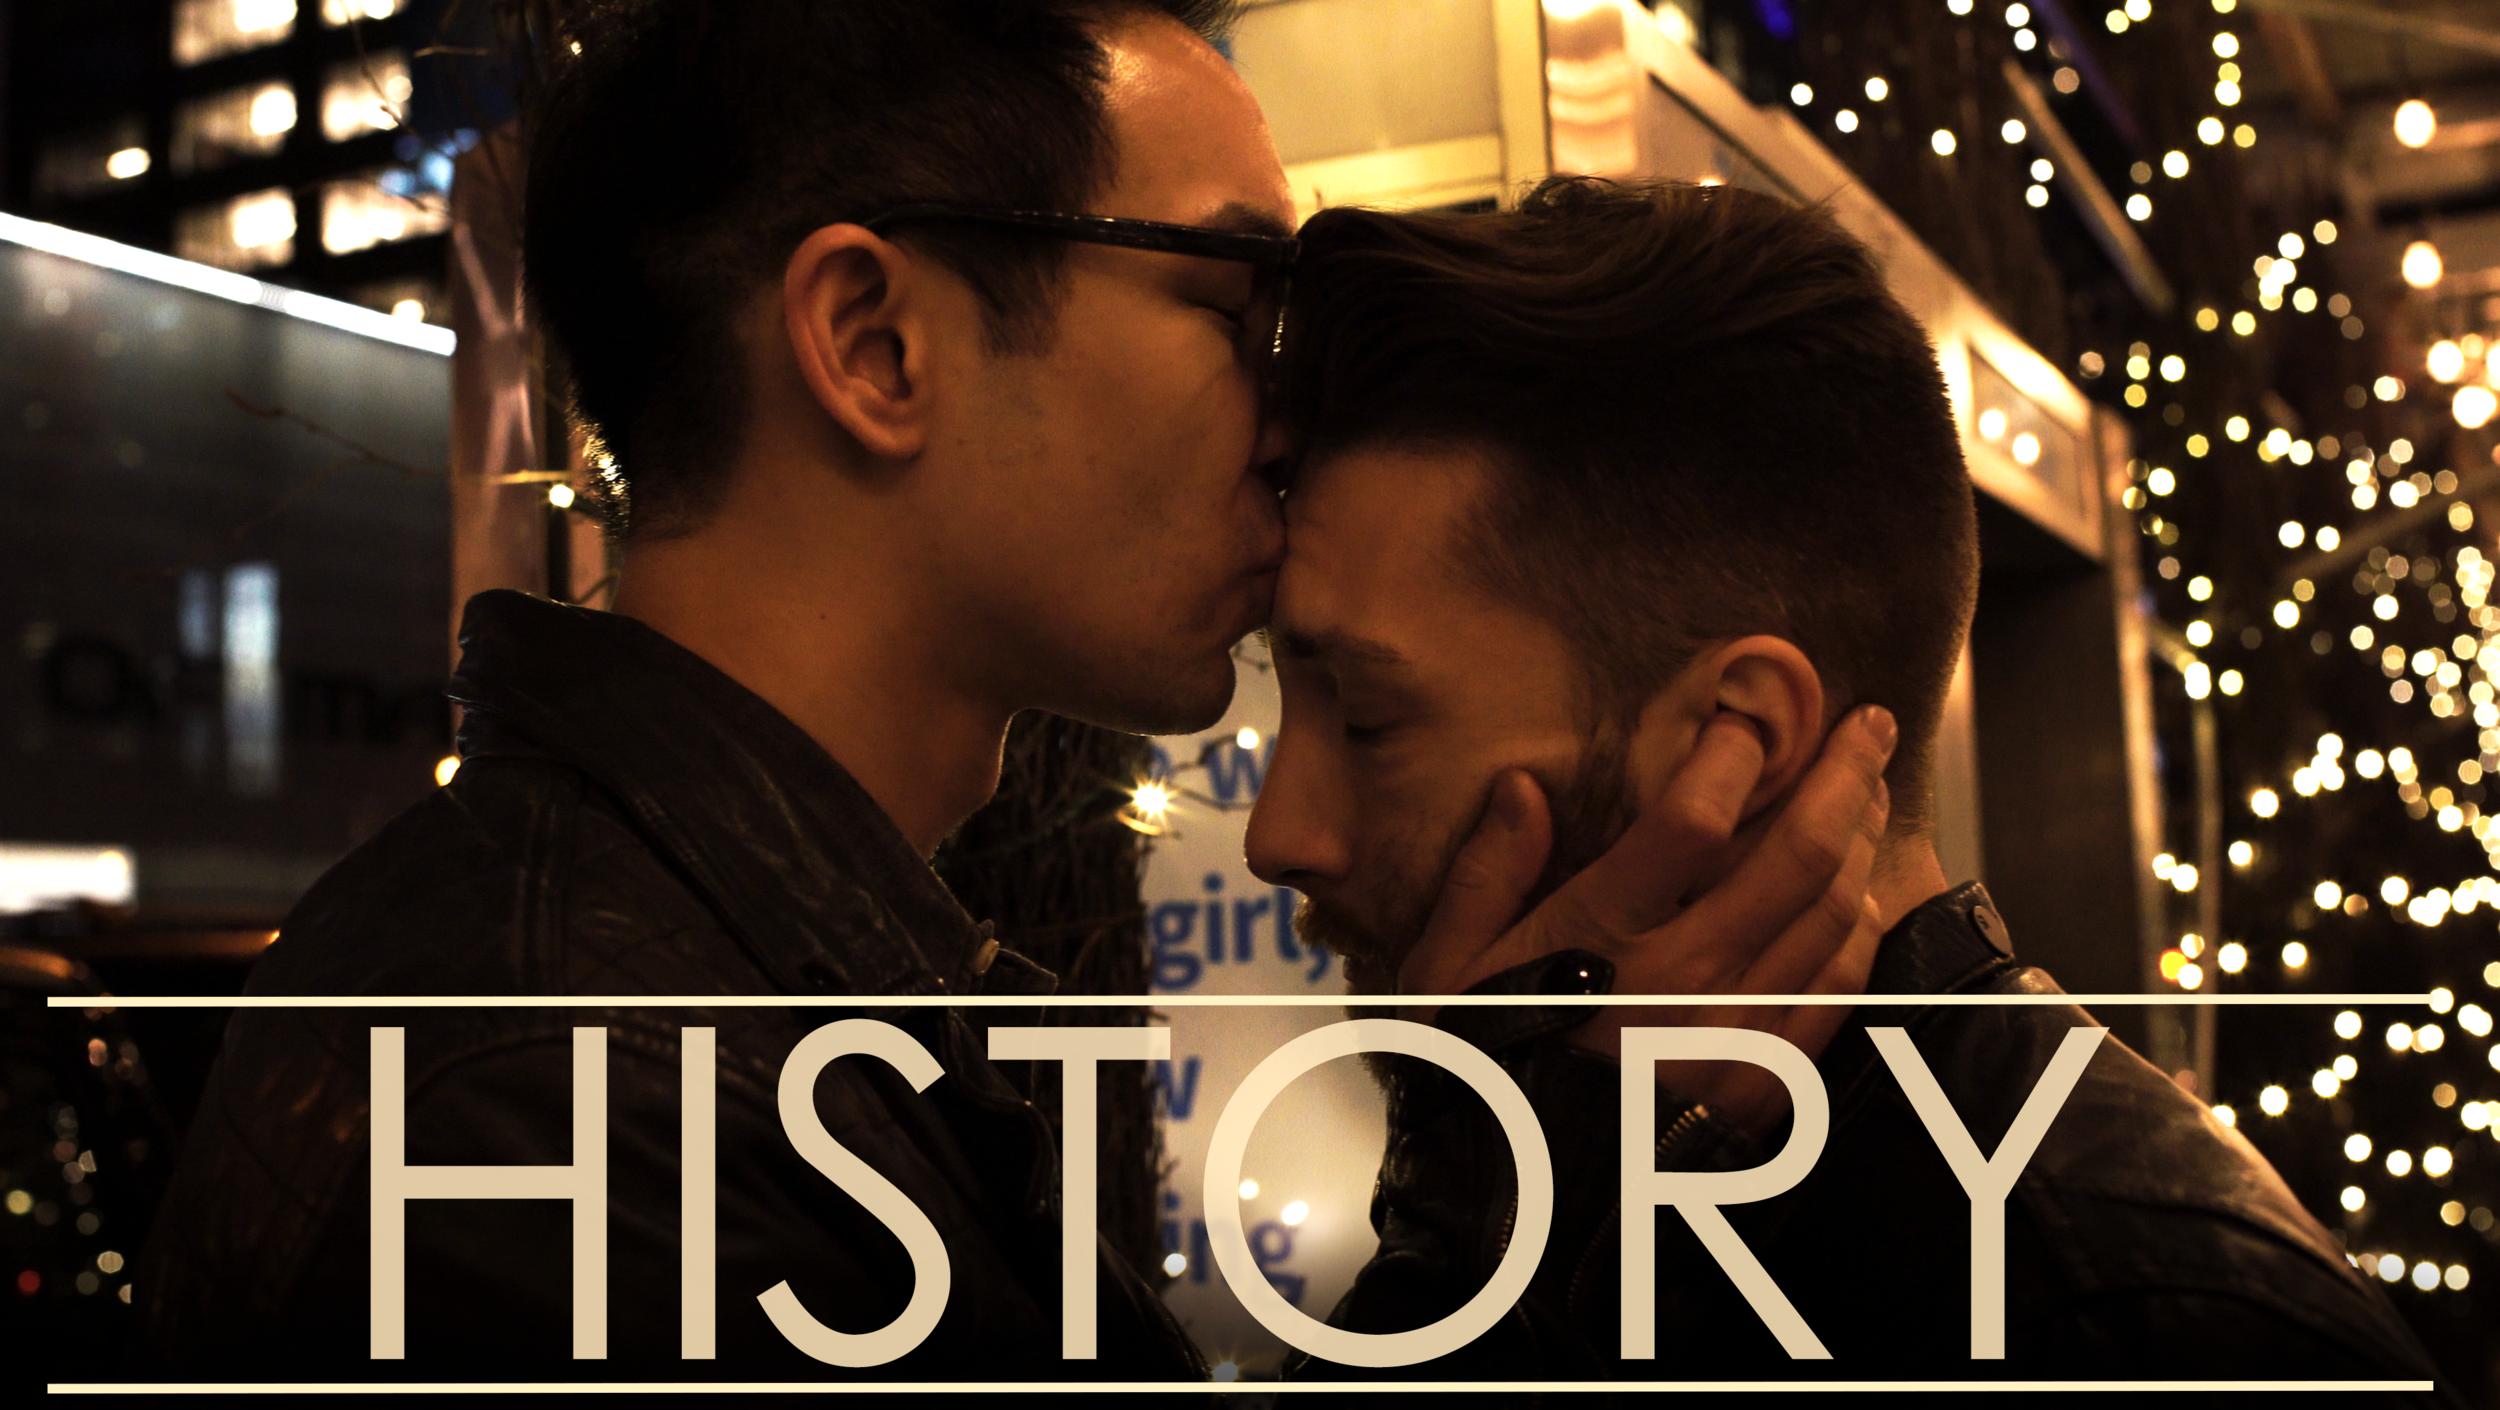 HistoryS2Title2 (3).png